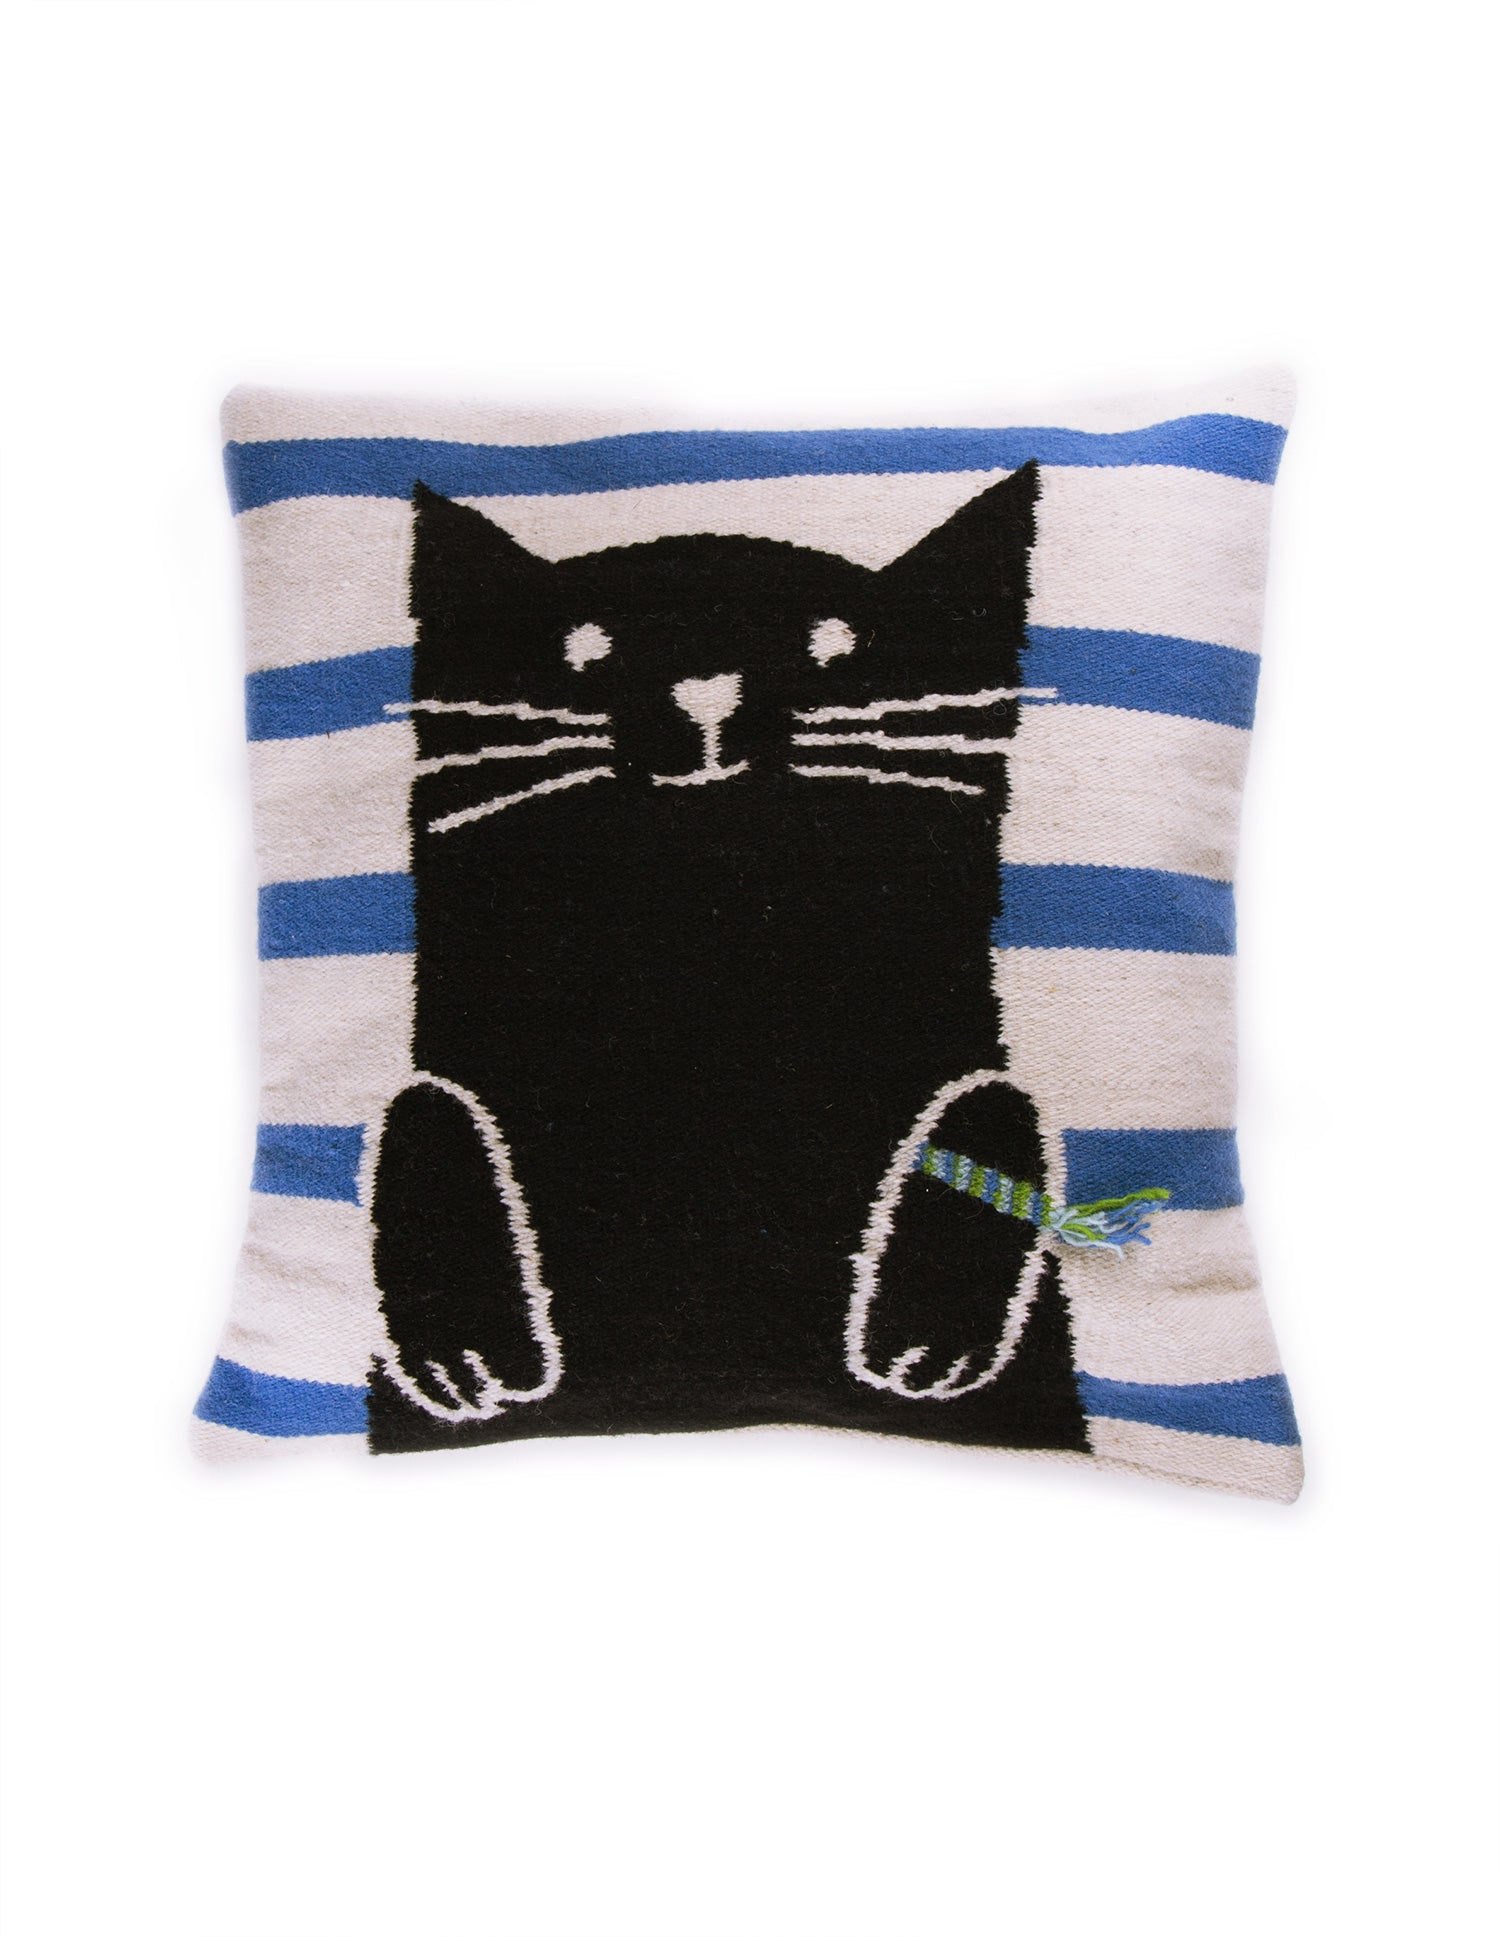 Oeuf Cat Pillow - Ladida